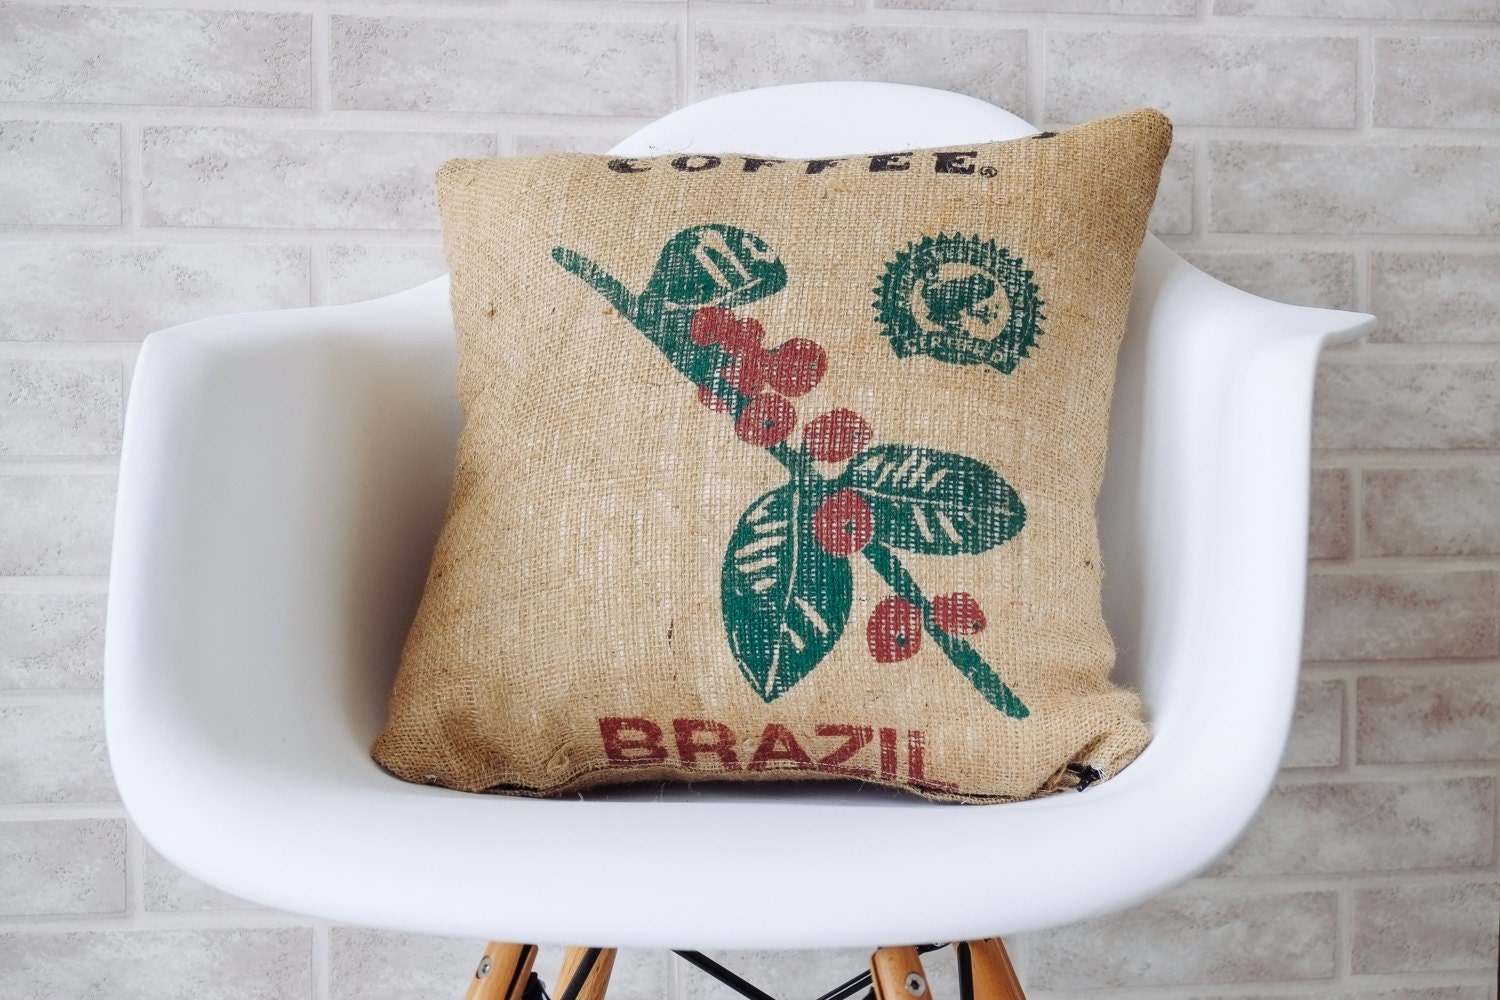 Decorative Burlap Pillow Covers : Burlap pillows decorative pillow throw pillow cover